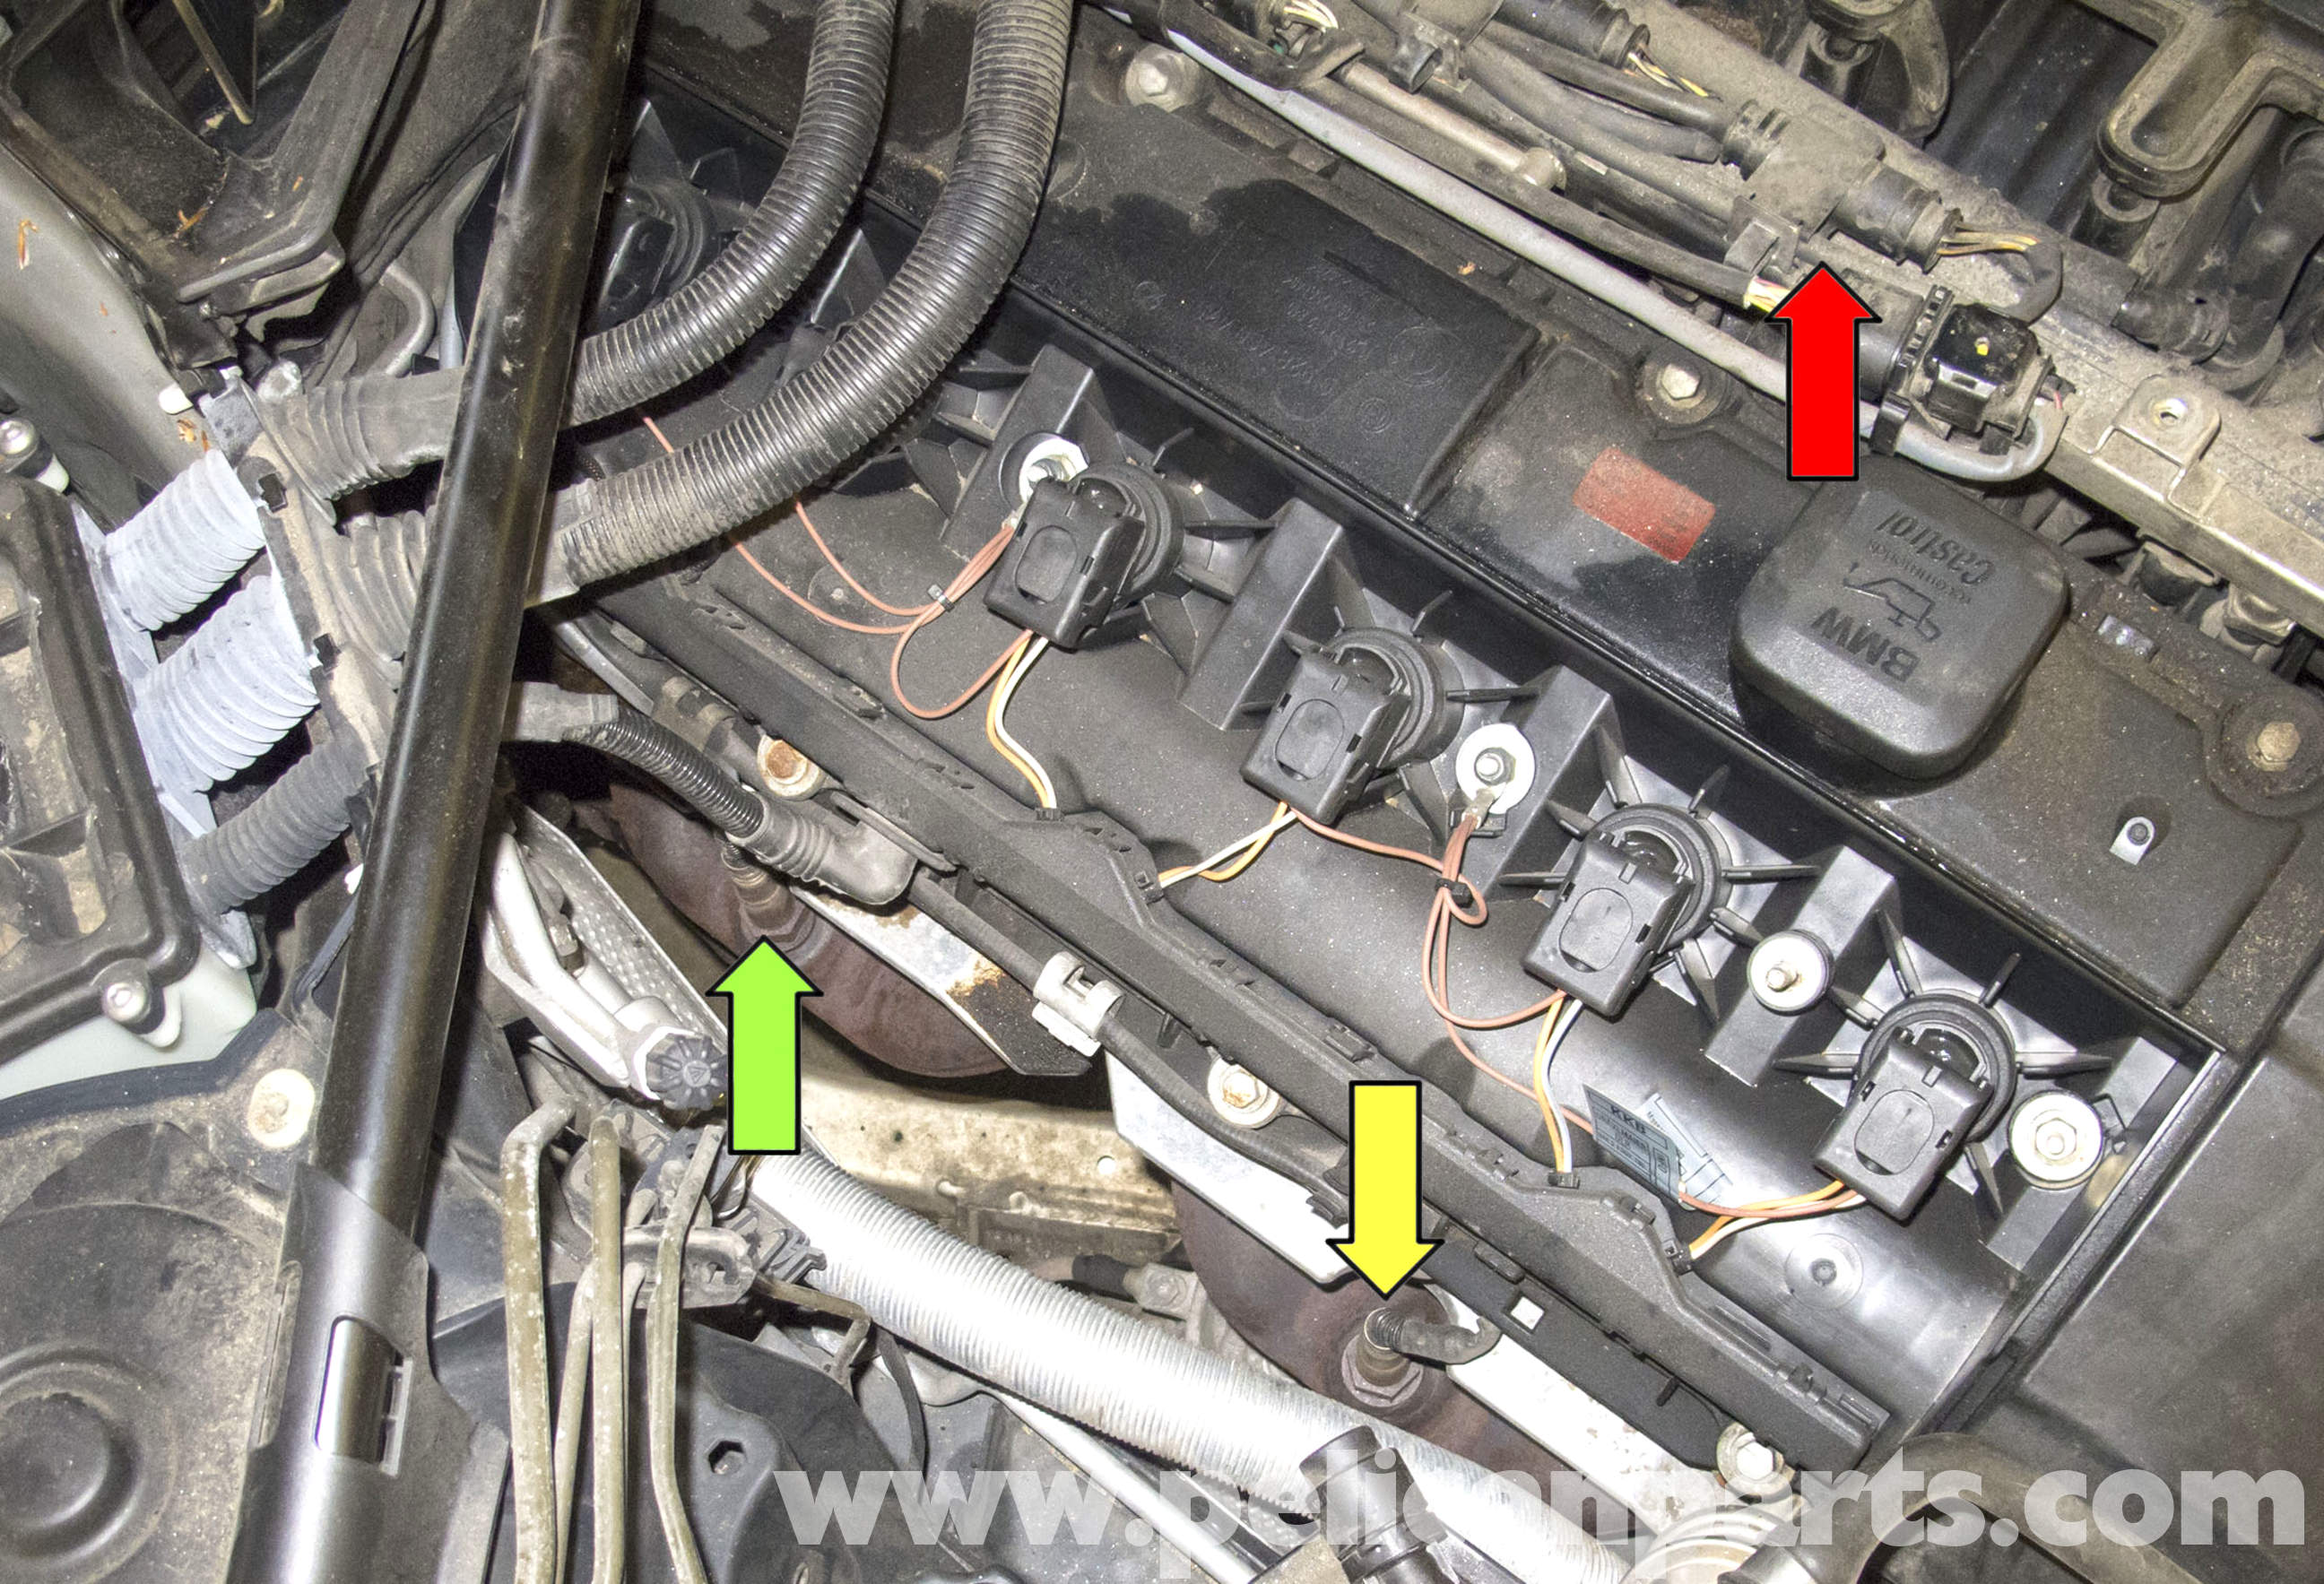 2u99b Replace O2 Sensor 2005 Toyota Sienna Le together with Elm327 Bluetooth in addition Watch moreover Replace Exhaust Flange Gasket 7214923 furthermore 458gb Find Bank Sensor 2000 Toyota Sienna. on toyota o2 sensor plug